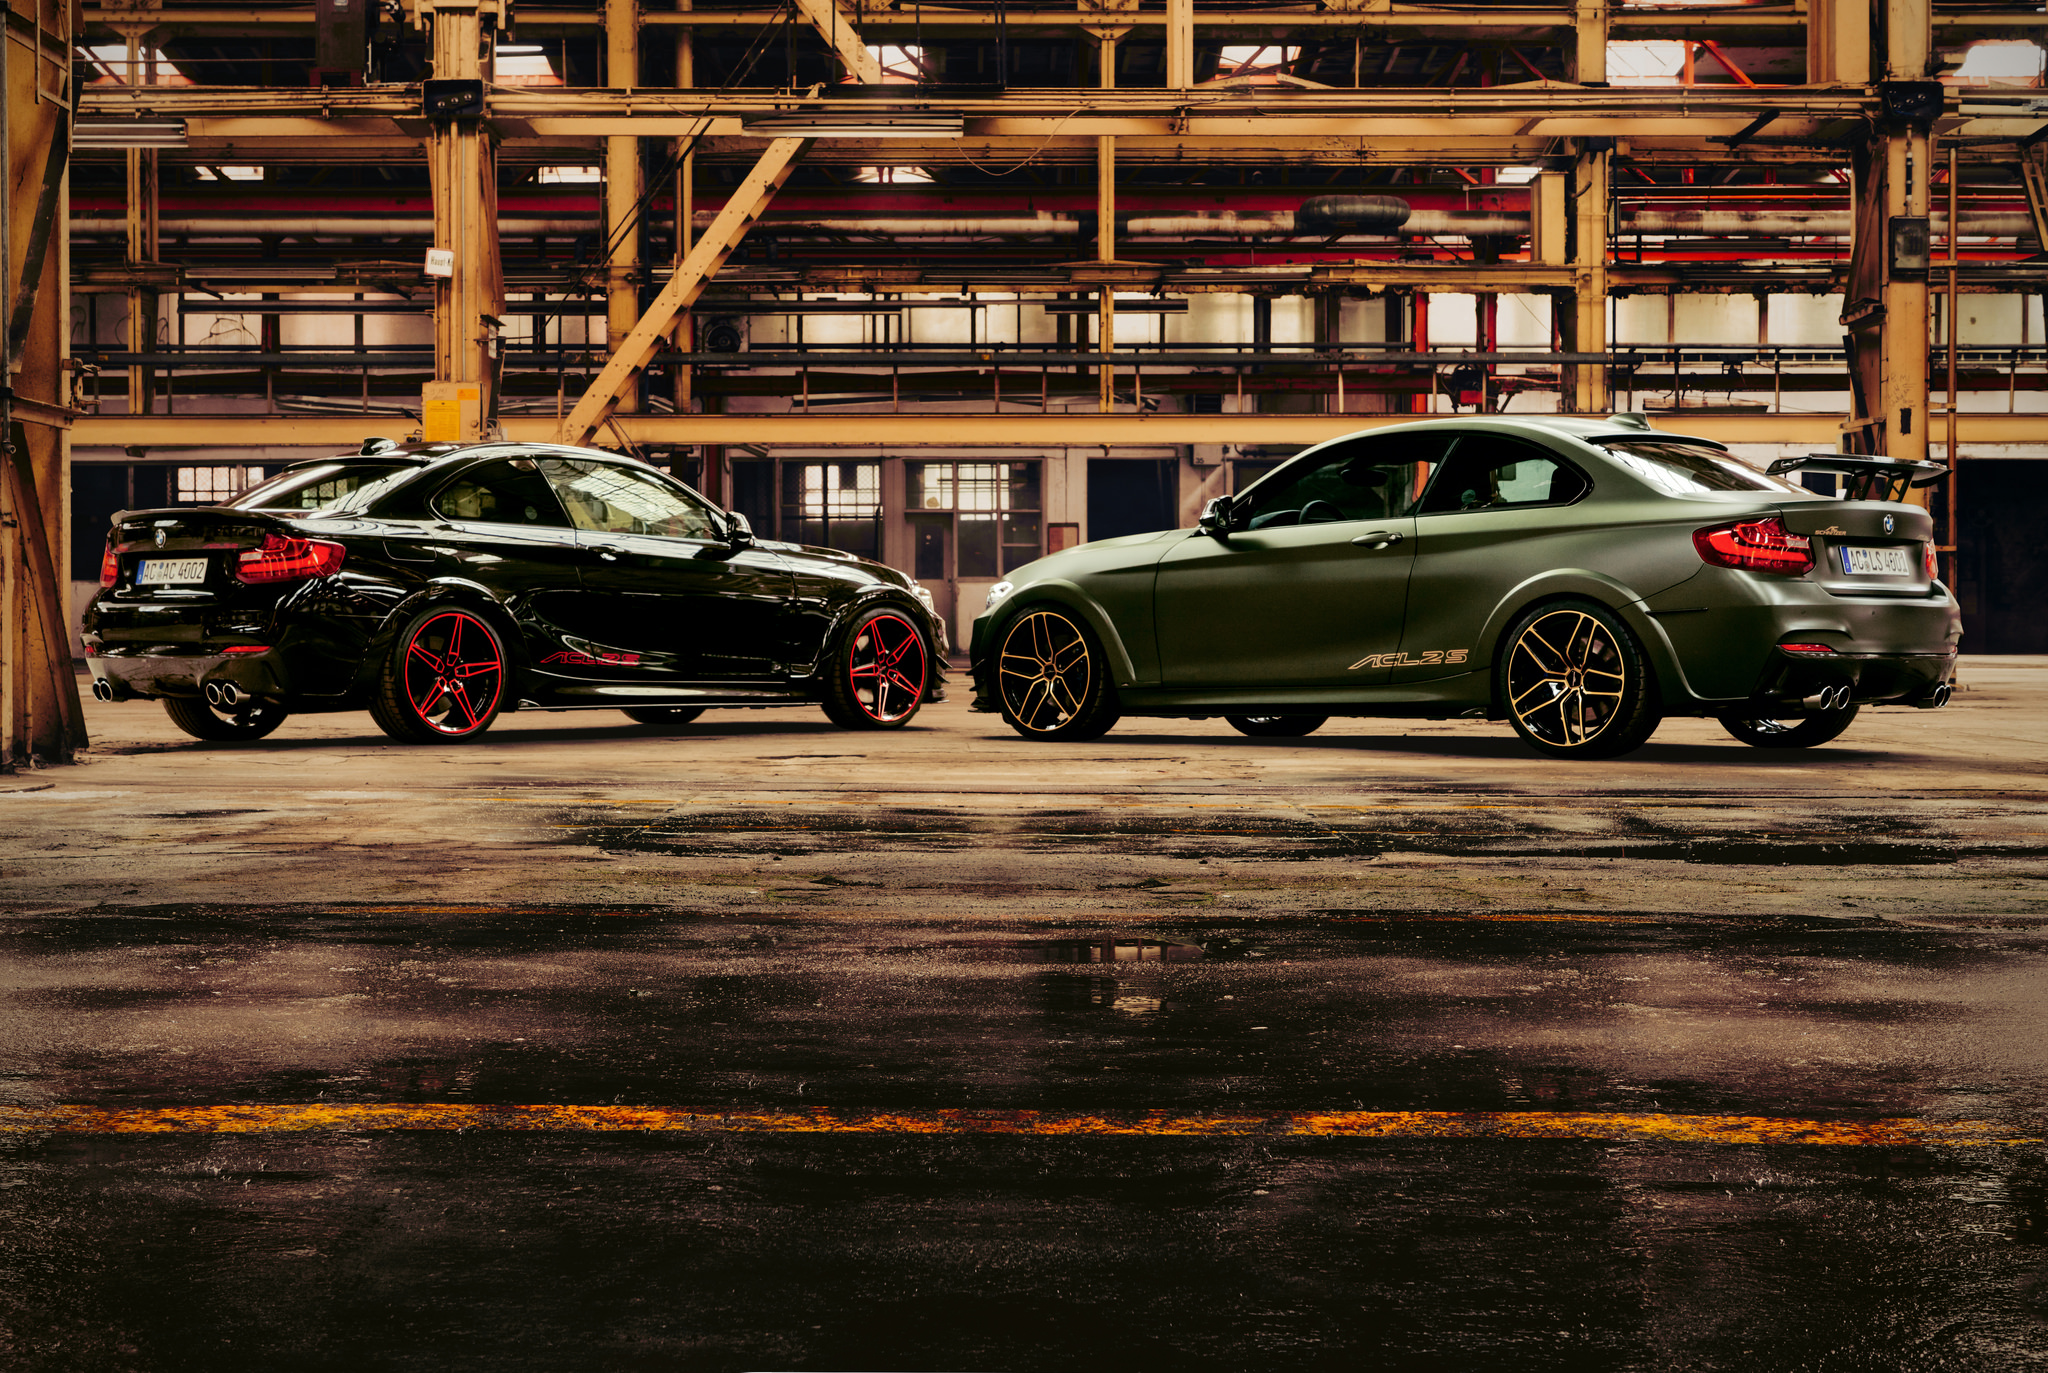 AC-Schnitzer-ACL2S-Special-Anniversary-Conversion-limited-to-30-for-BMW-M240i-Side-by-Side